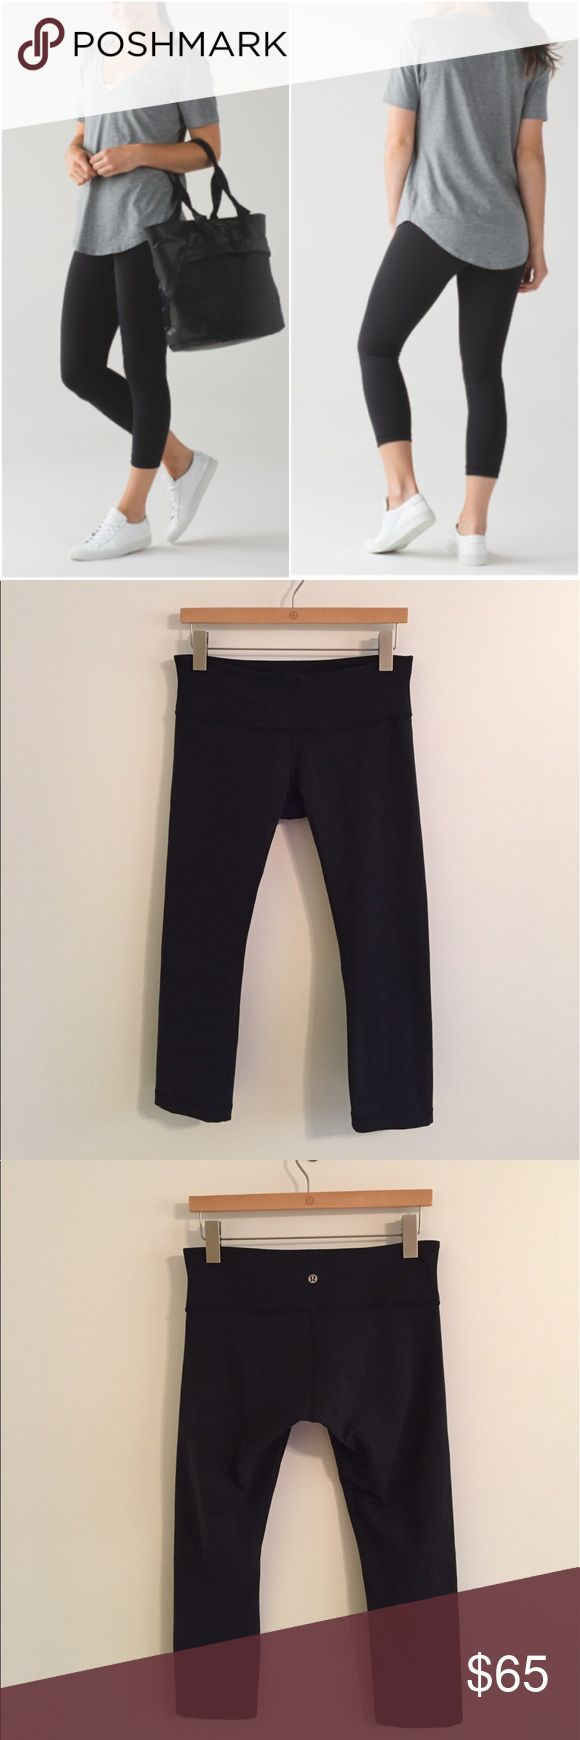 Lululemon wunder under crops Lululemon wunder under crops, size 8, black, great condition with no flaws(meaning no piling/seam damage/stains/rips/holes/etc). Medium rise, crop length, tight fit, Full On Luon! Bundle to save 10% off ❤️ lululemon athletica Pants Capris